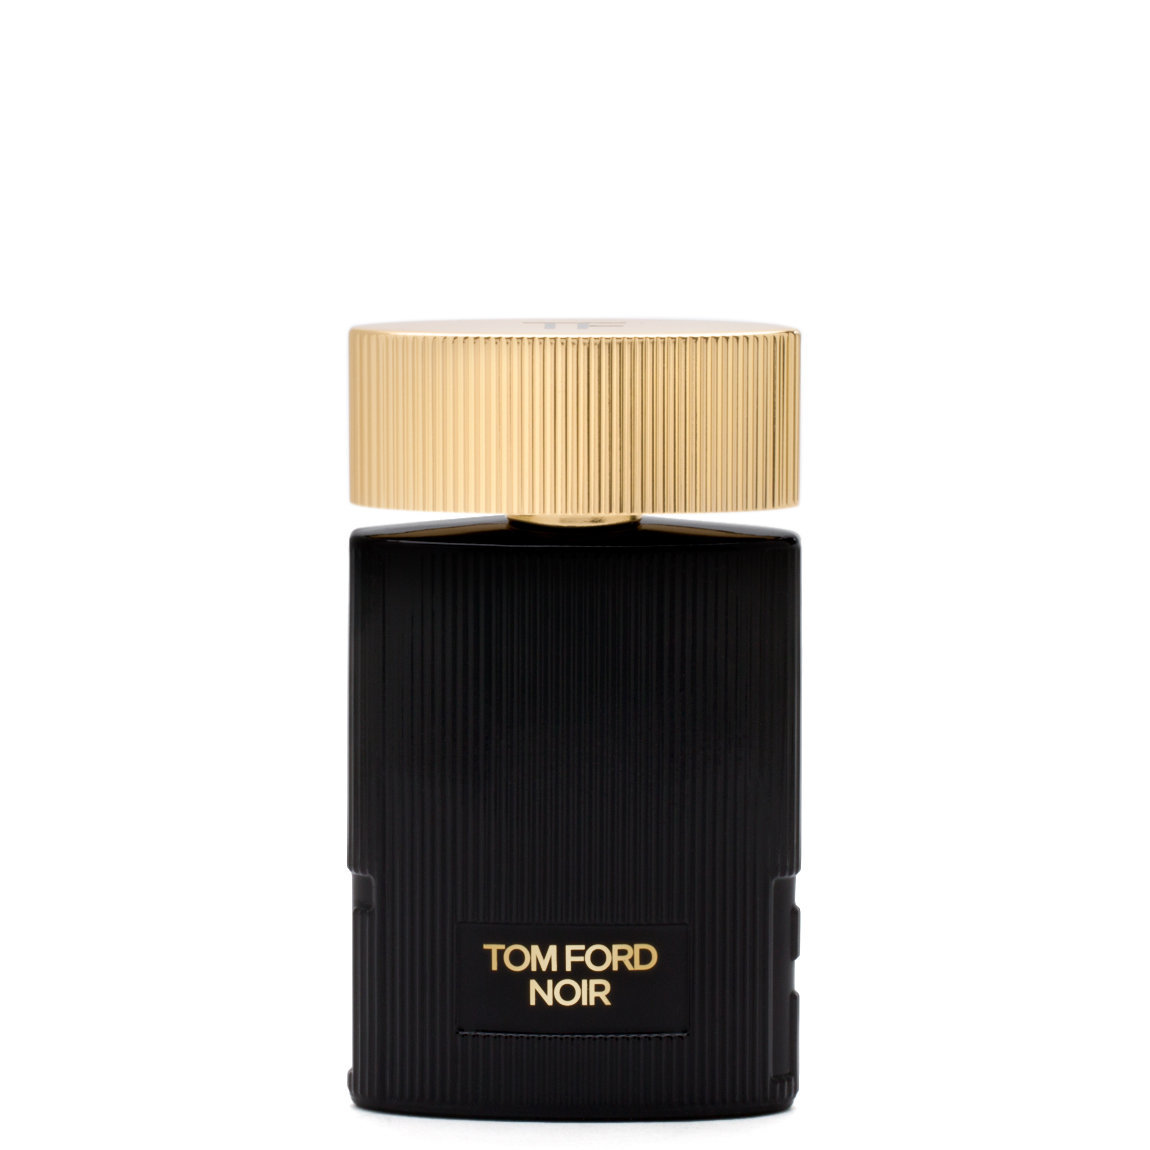 TOM FORD Tom Ford Noir Pour Femme 50 ml product swatch.